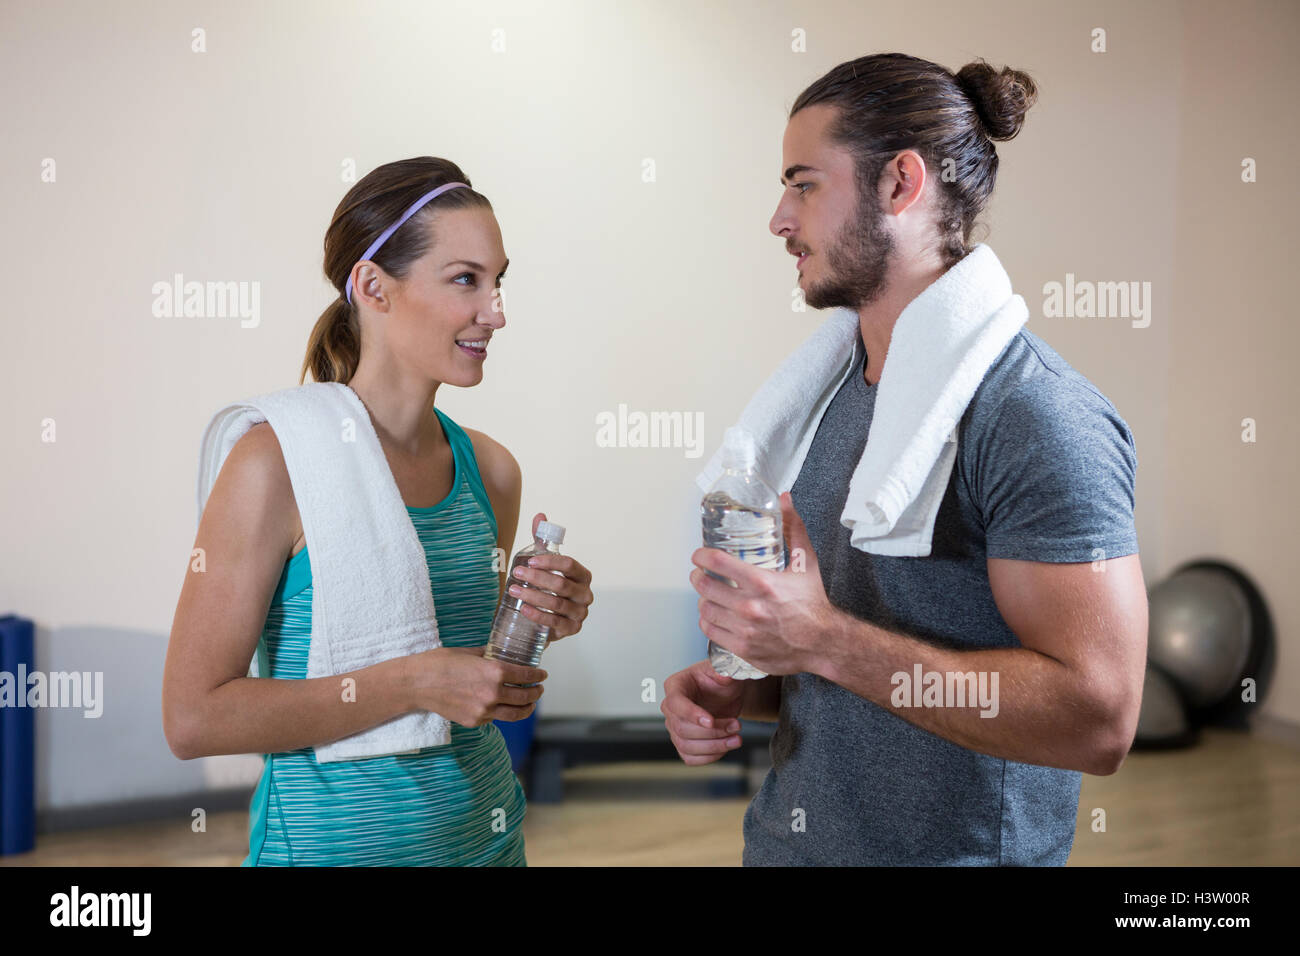 Fitness trainer and woman holding water bottle - Stock Image